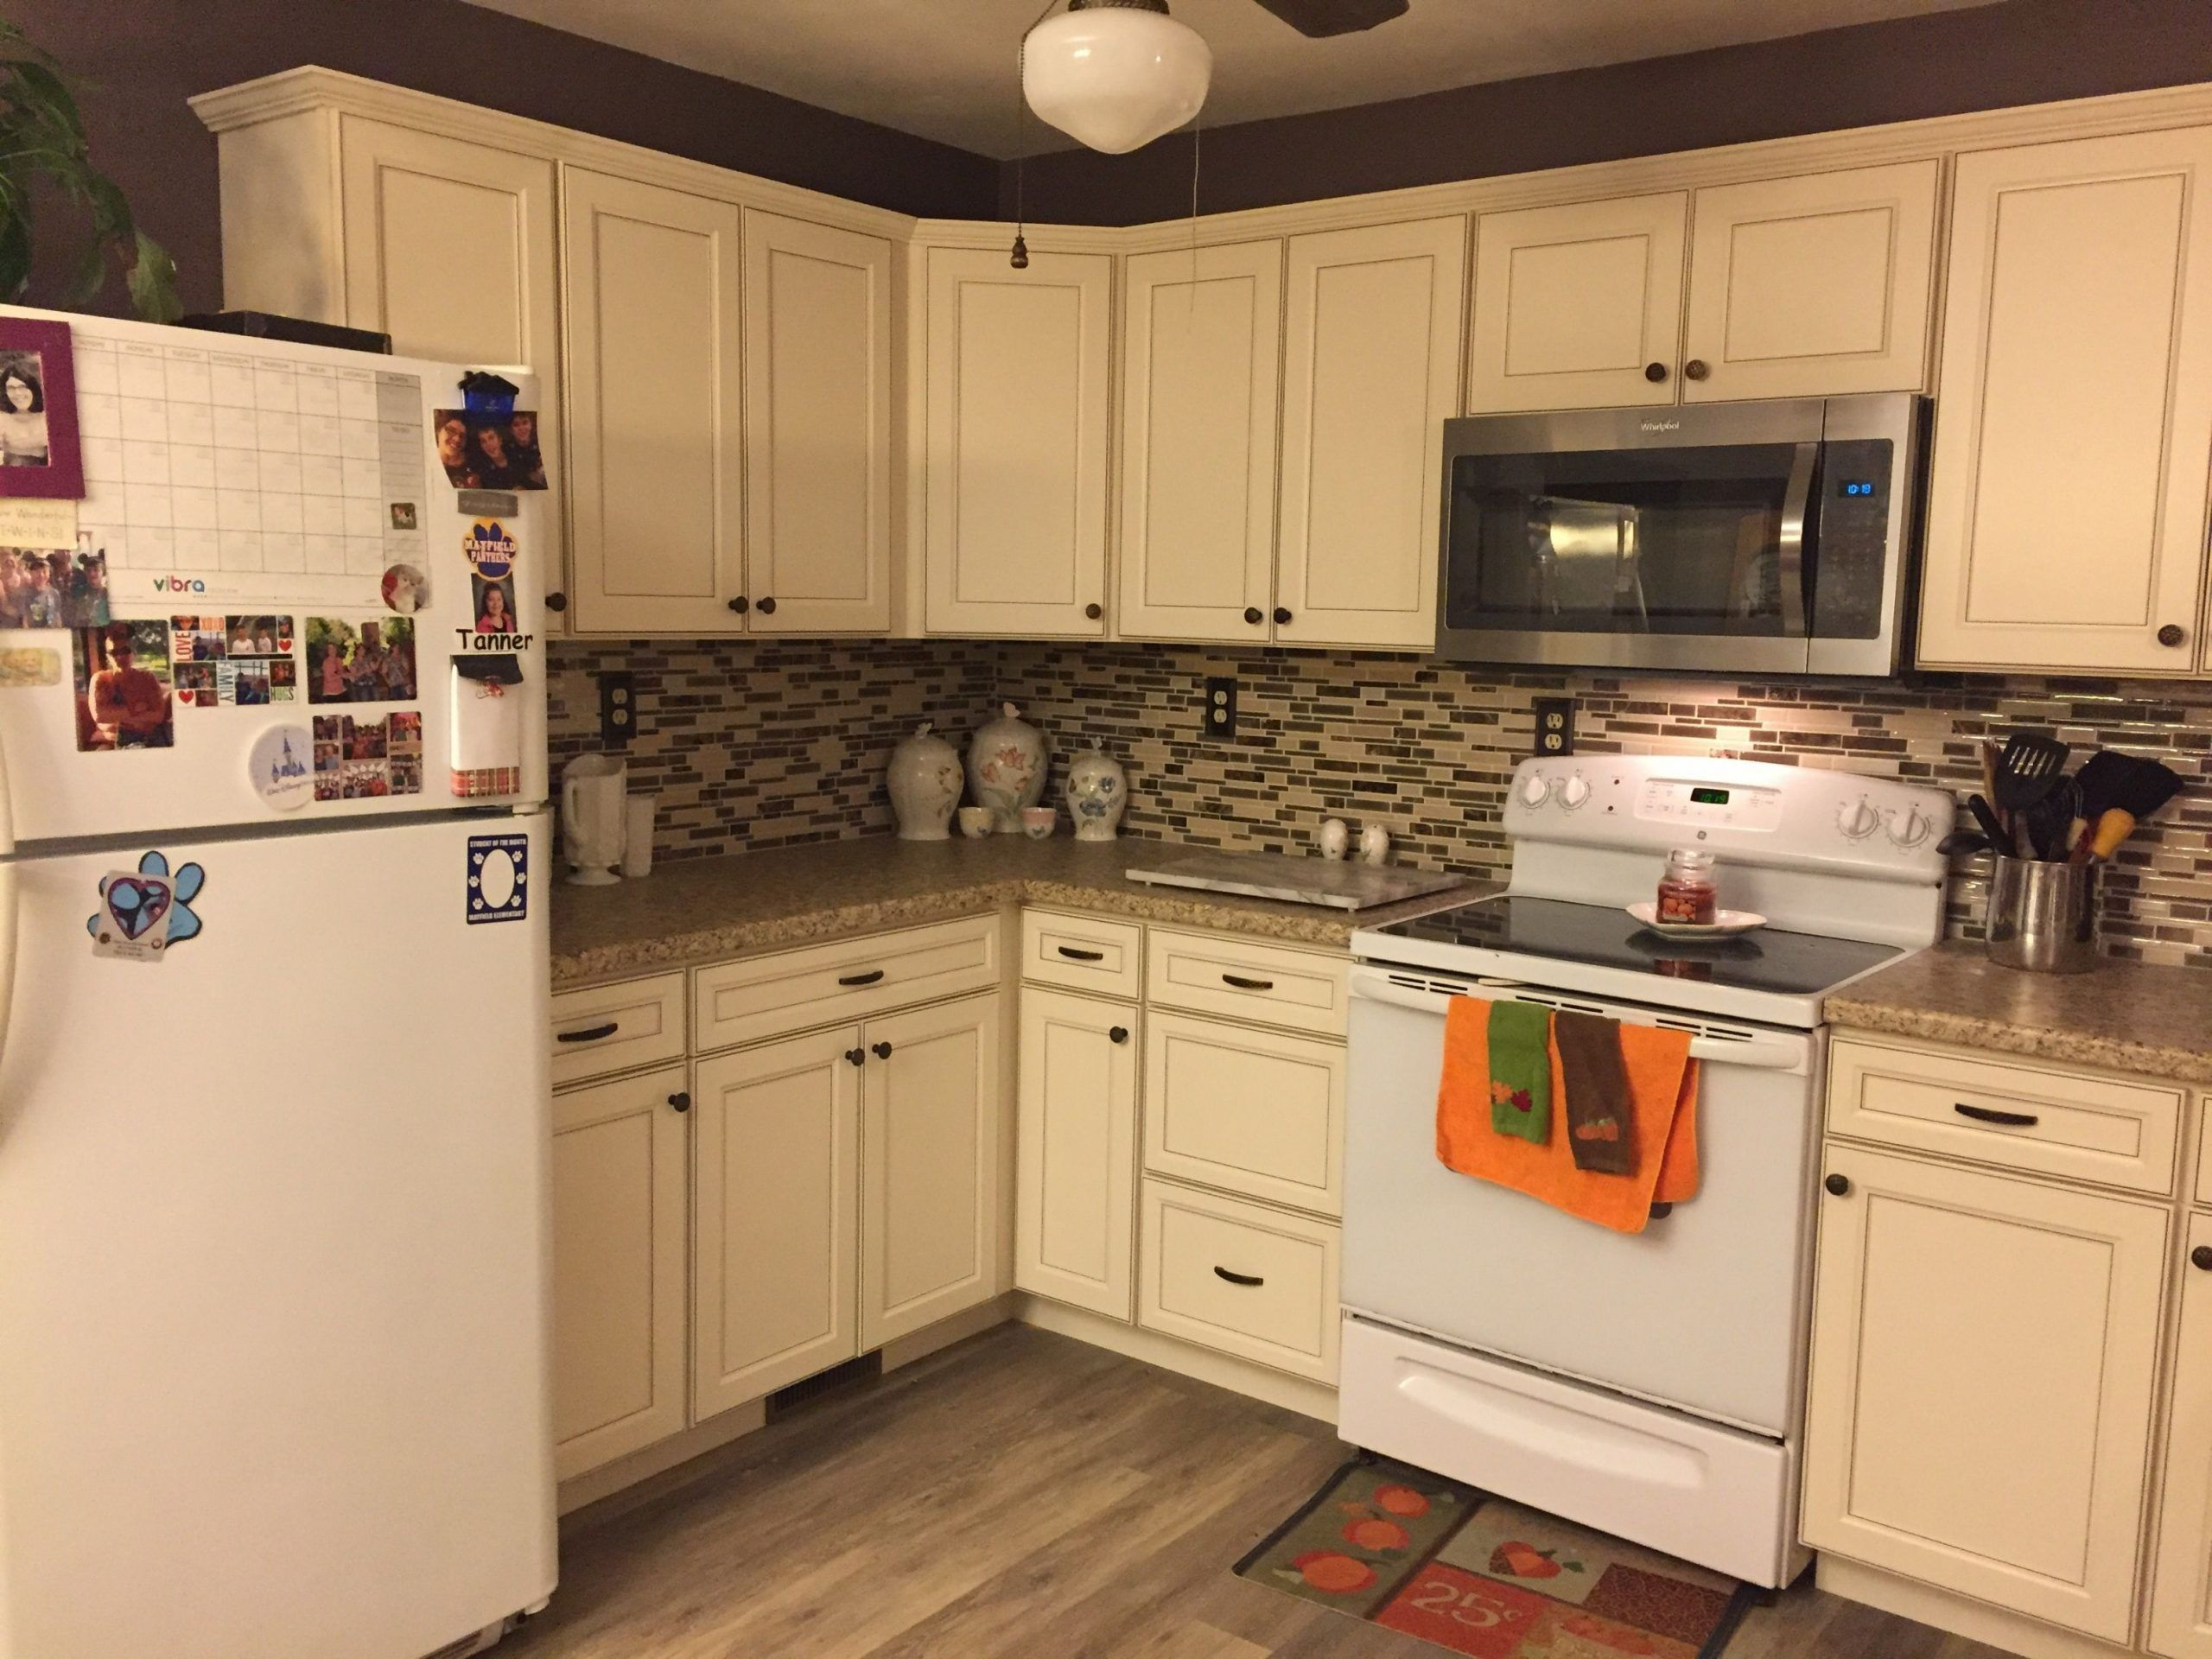 Off White Kitchen Cabinets Lowes Off White Kitchen Cabinets Lowes Off White Cab In 2020 Cost Of Kitchen Cabinets Kitchen Cabinet Remodel Prefab Kitchen Cabinets